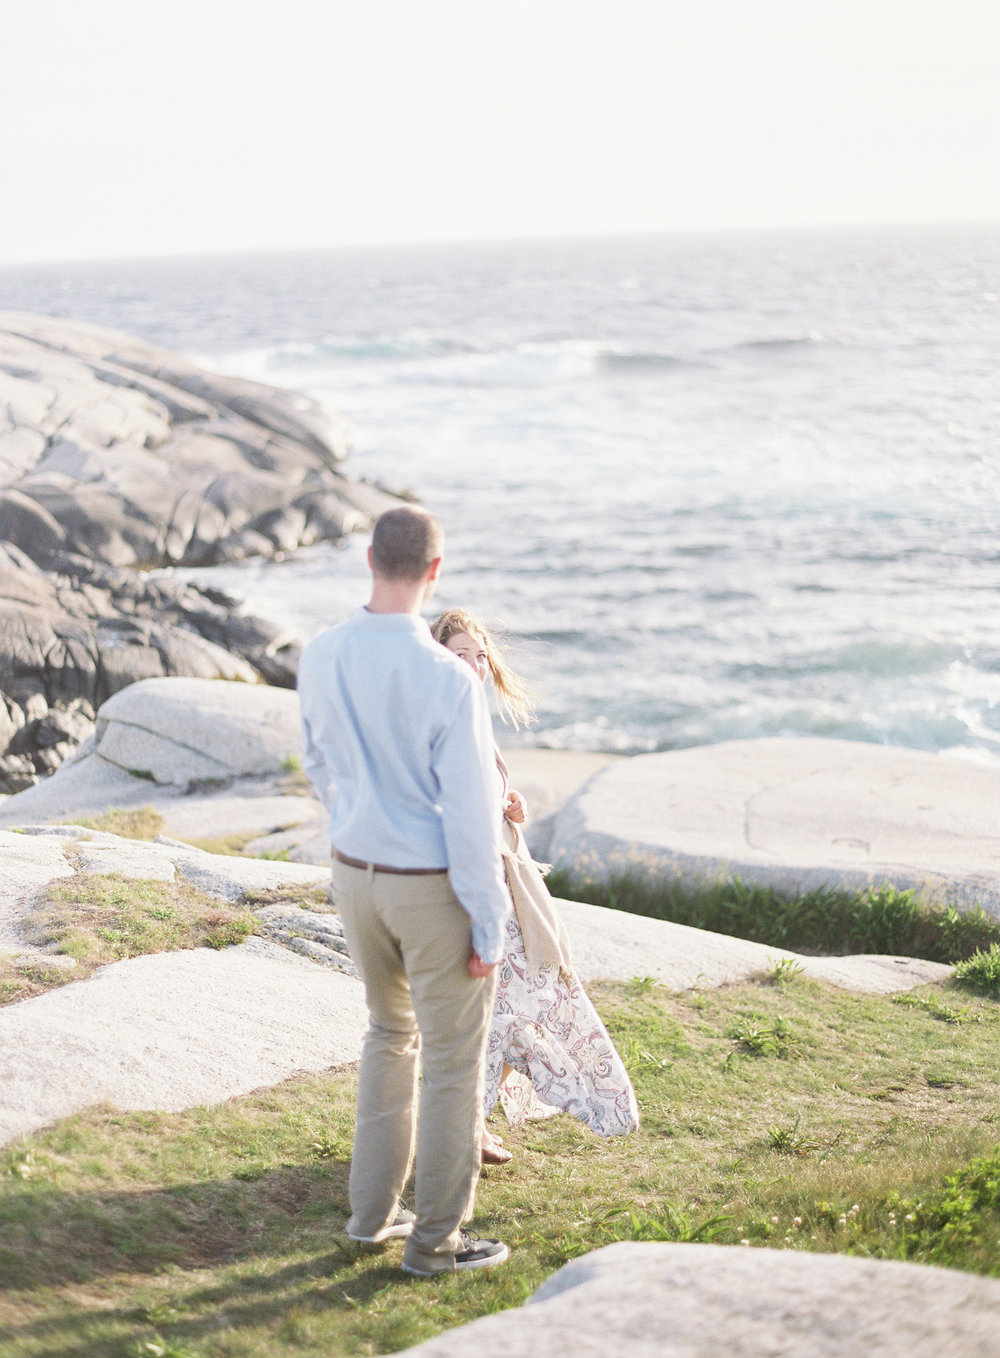 Jacqueline Anne Photography - Alex and Andrew Engagement at Peggy's Cove - Halifax-120.jpg